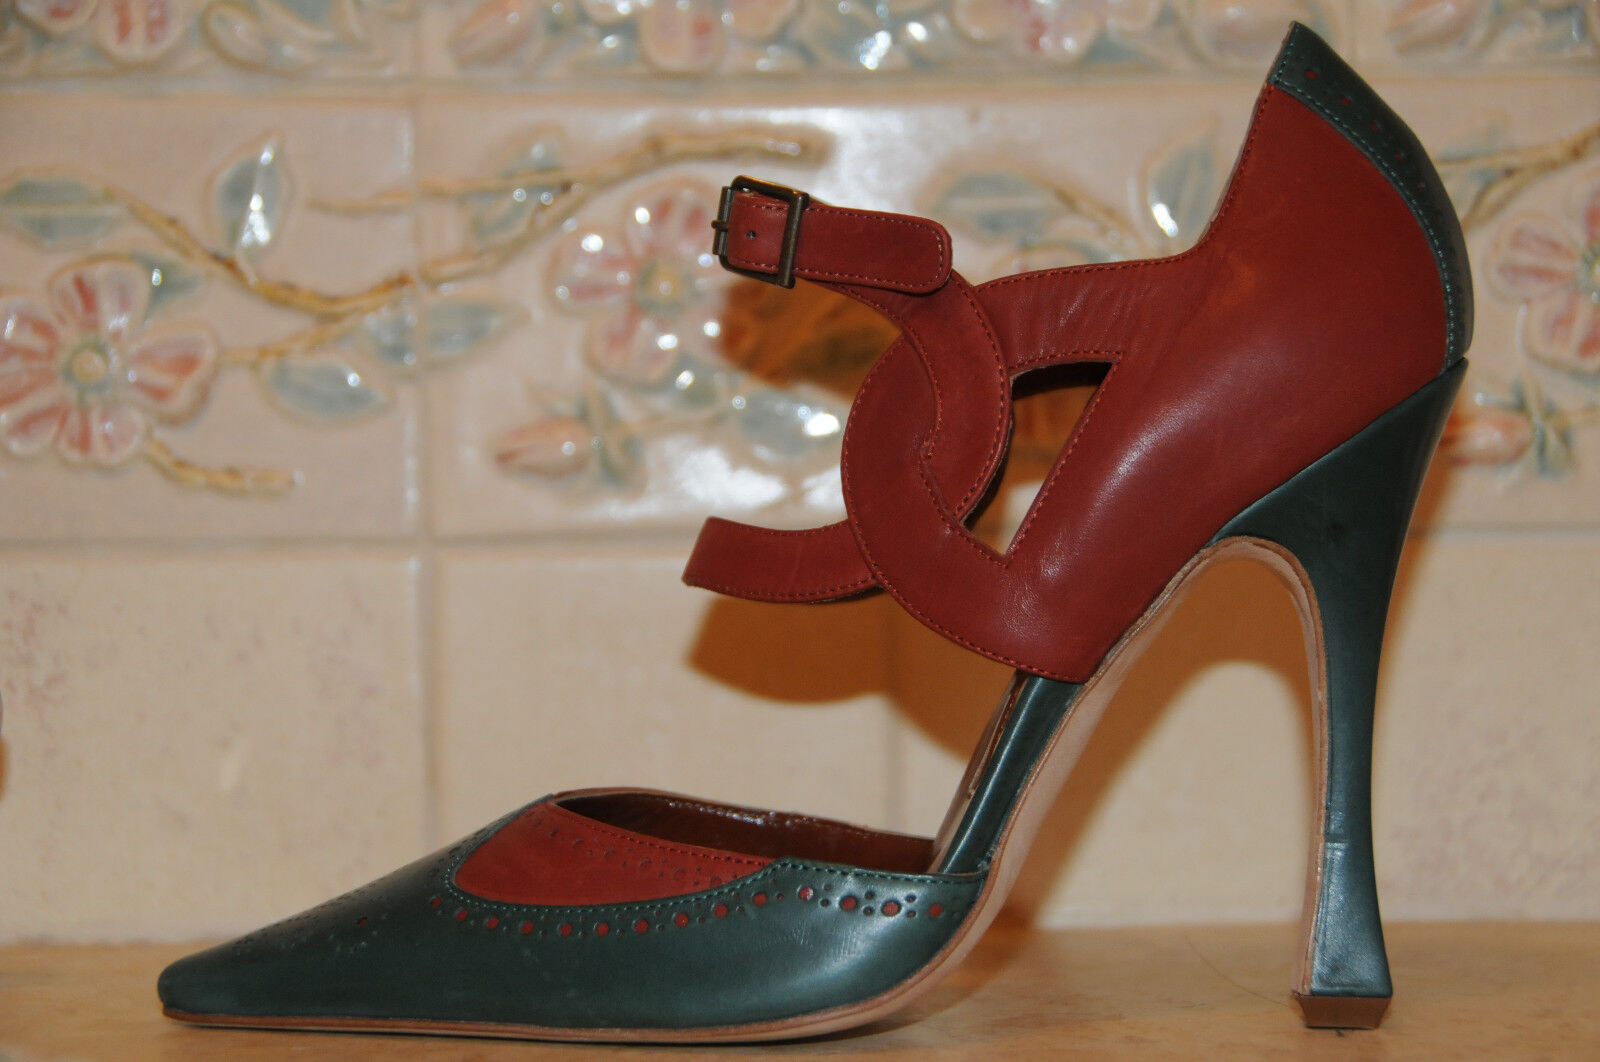 New MANOLO BLAHNIK ERINA verde Brown Heels Pumps SCARPE 37 6.5